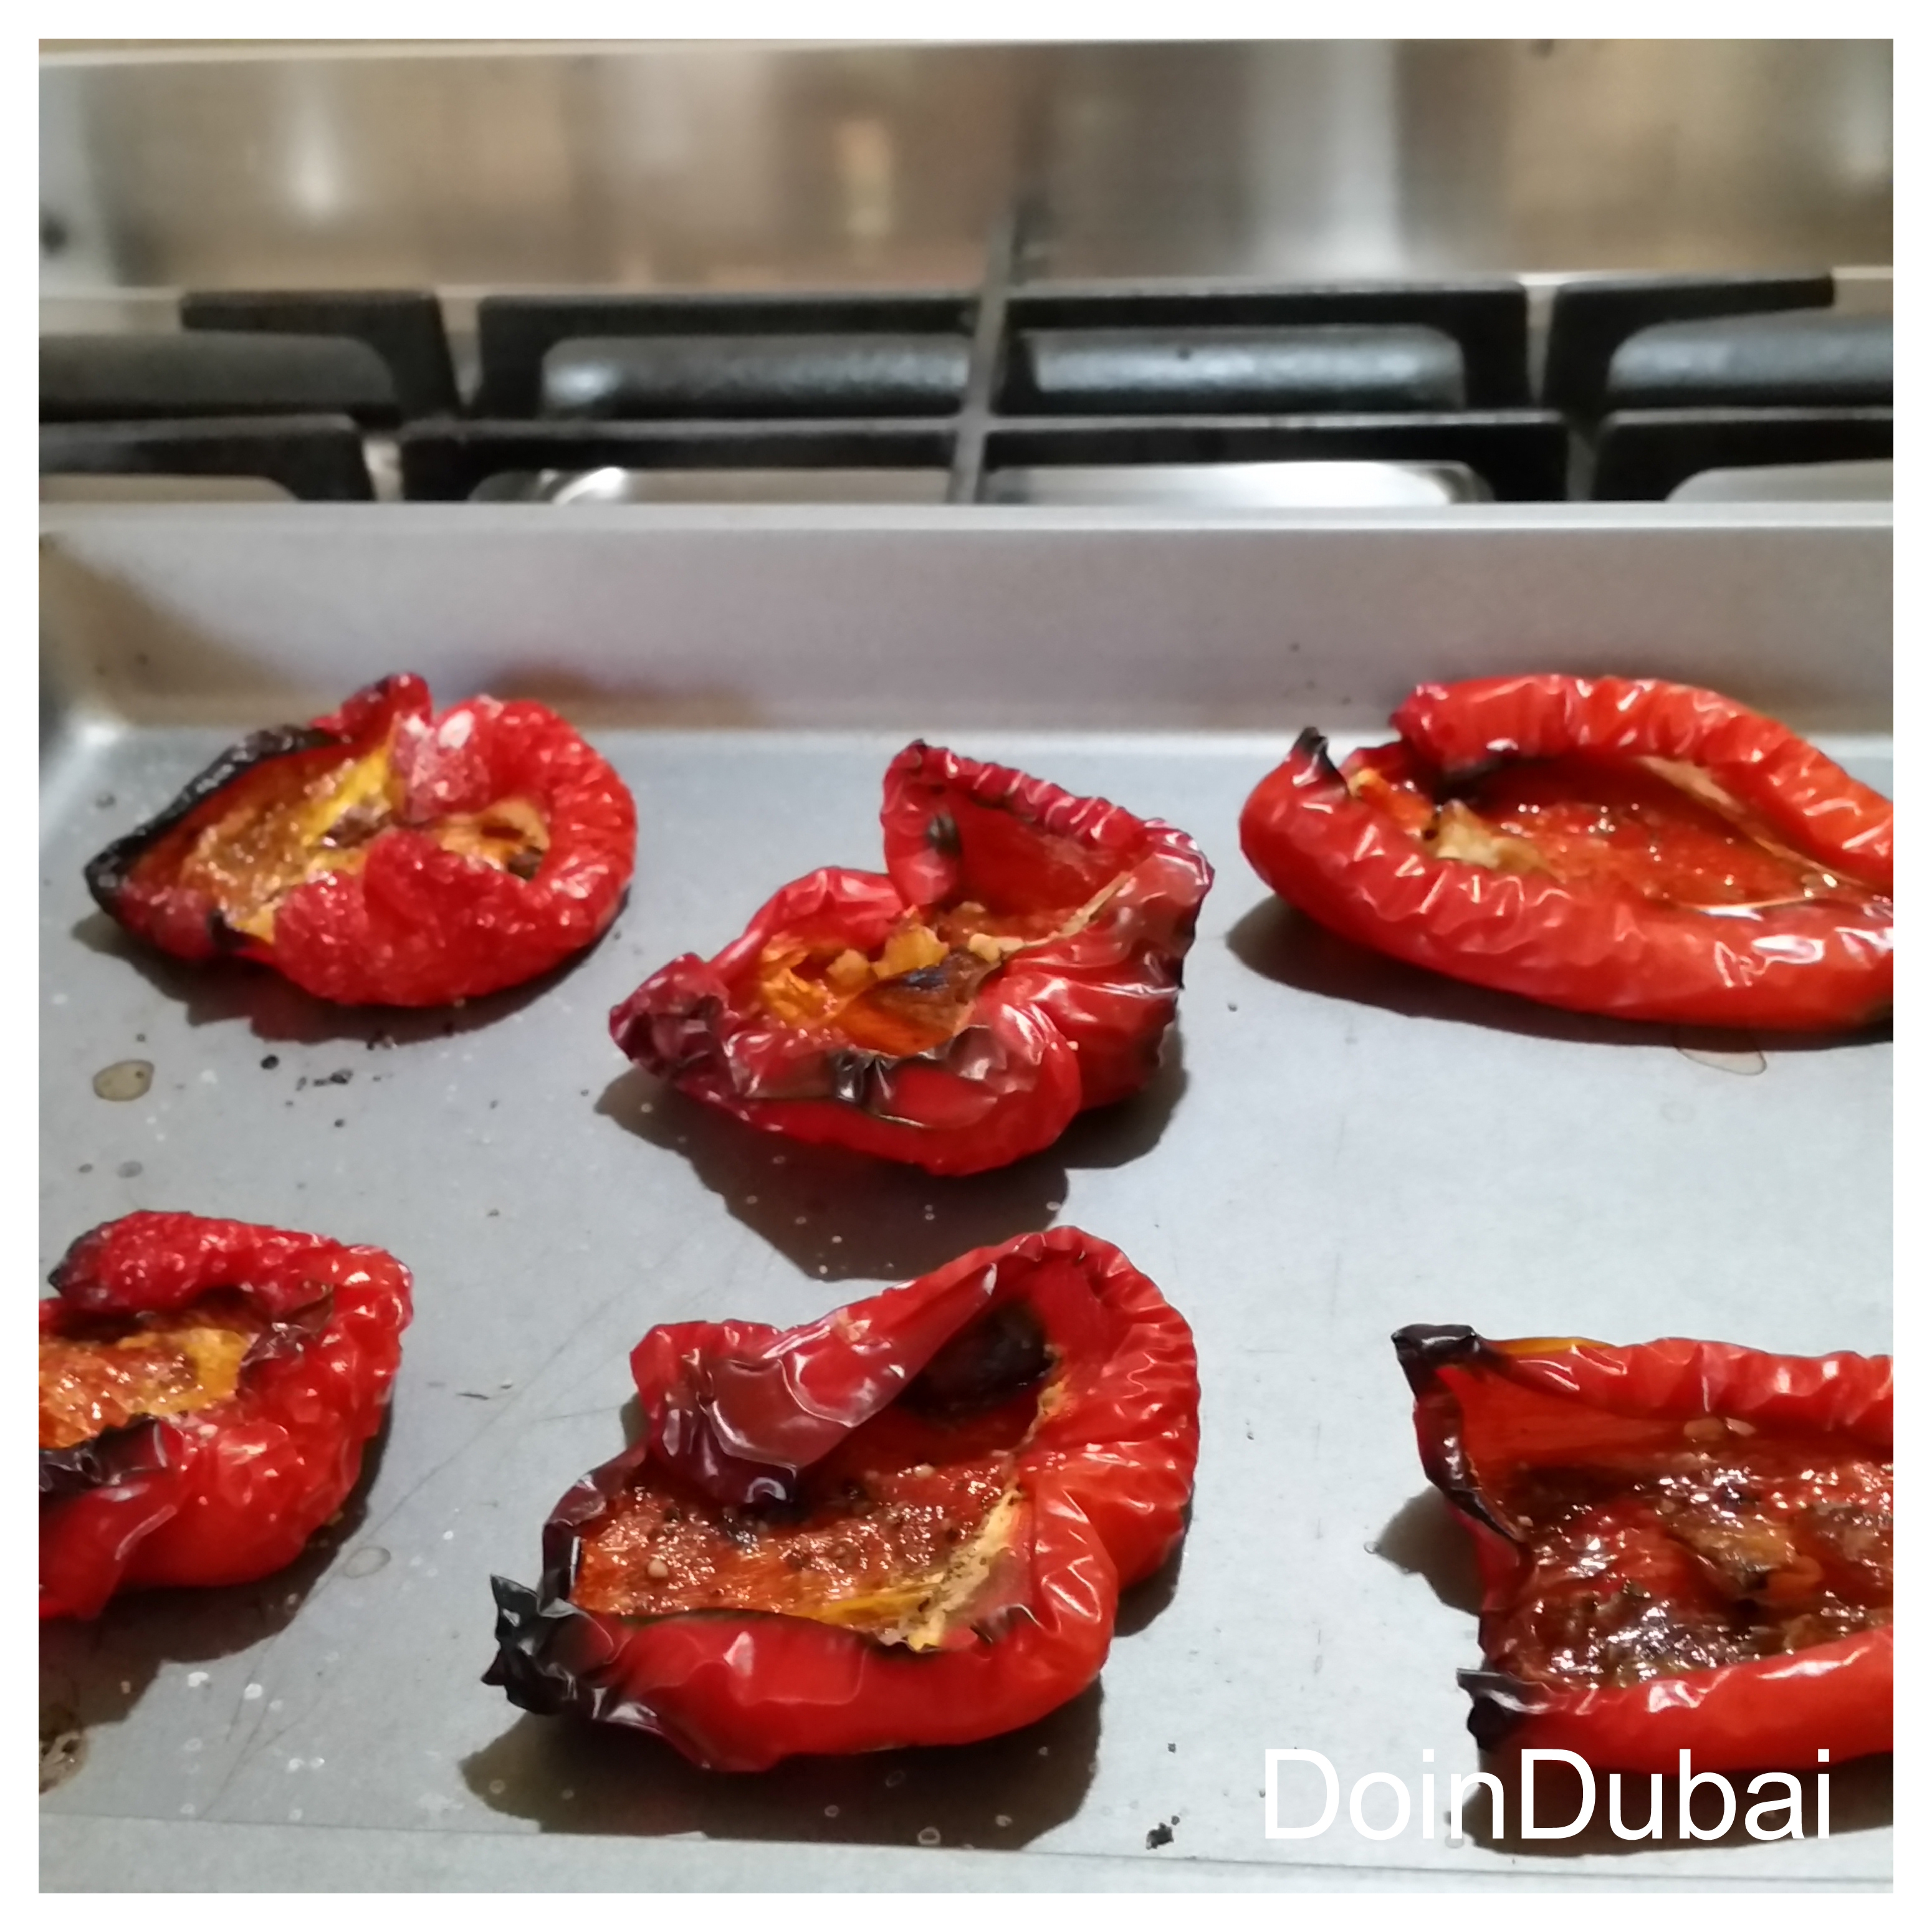 Cook peppers until charred not burnt